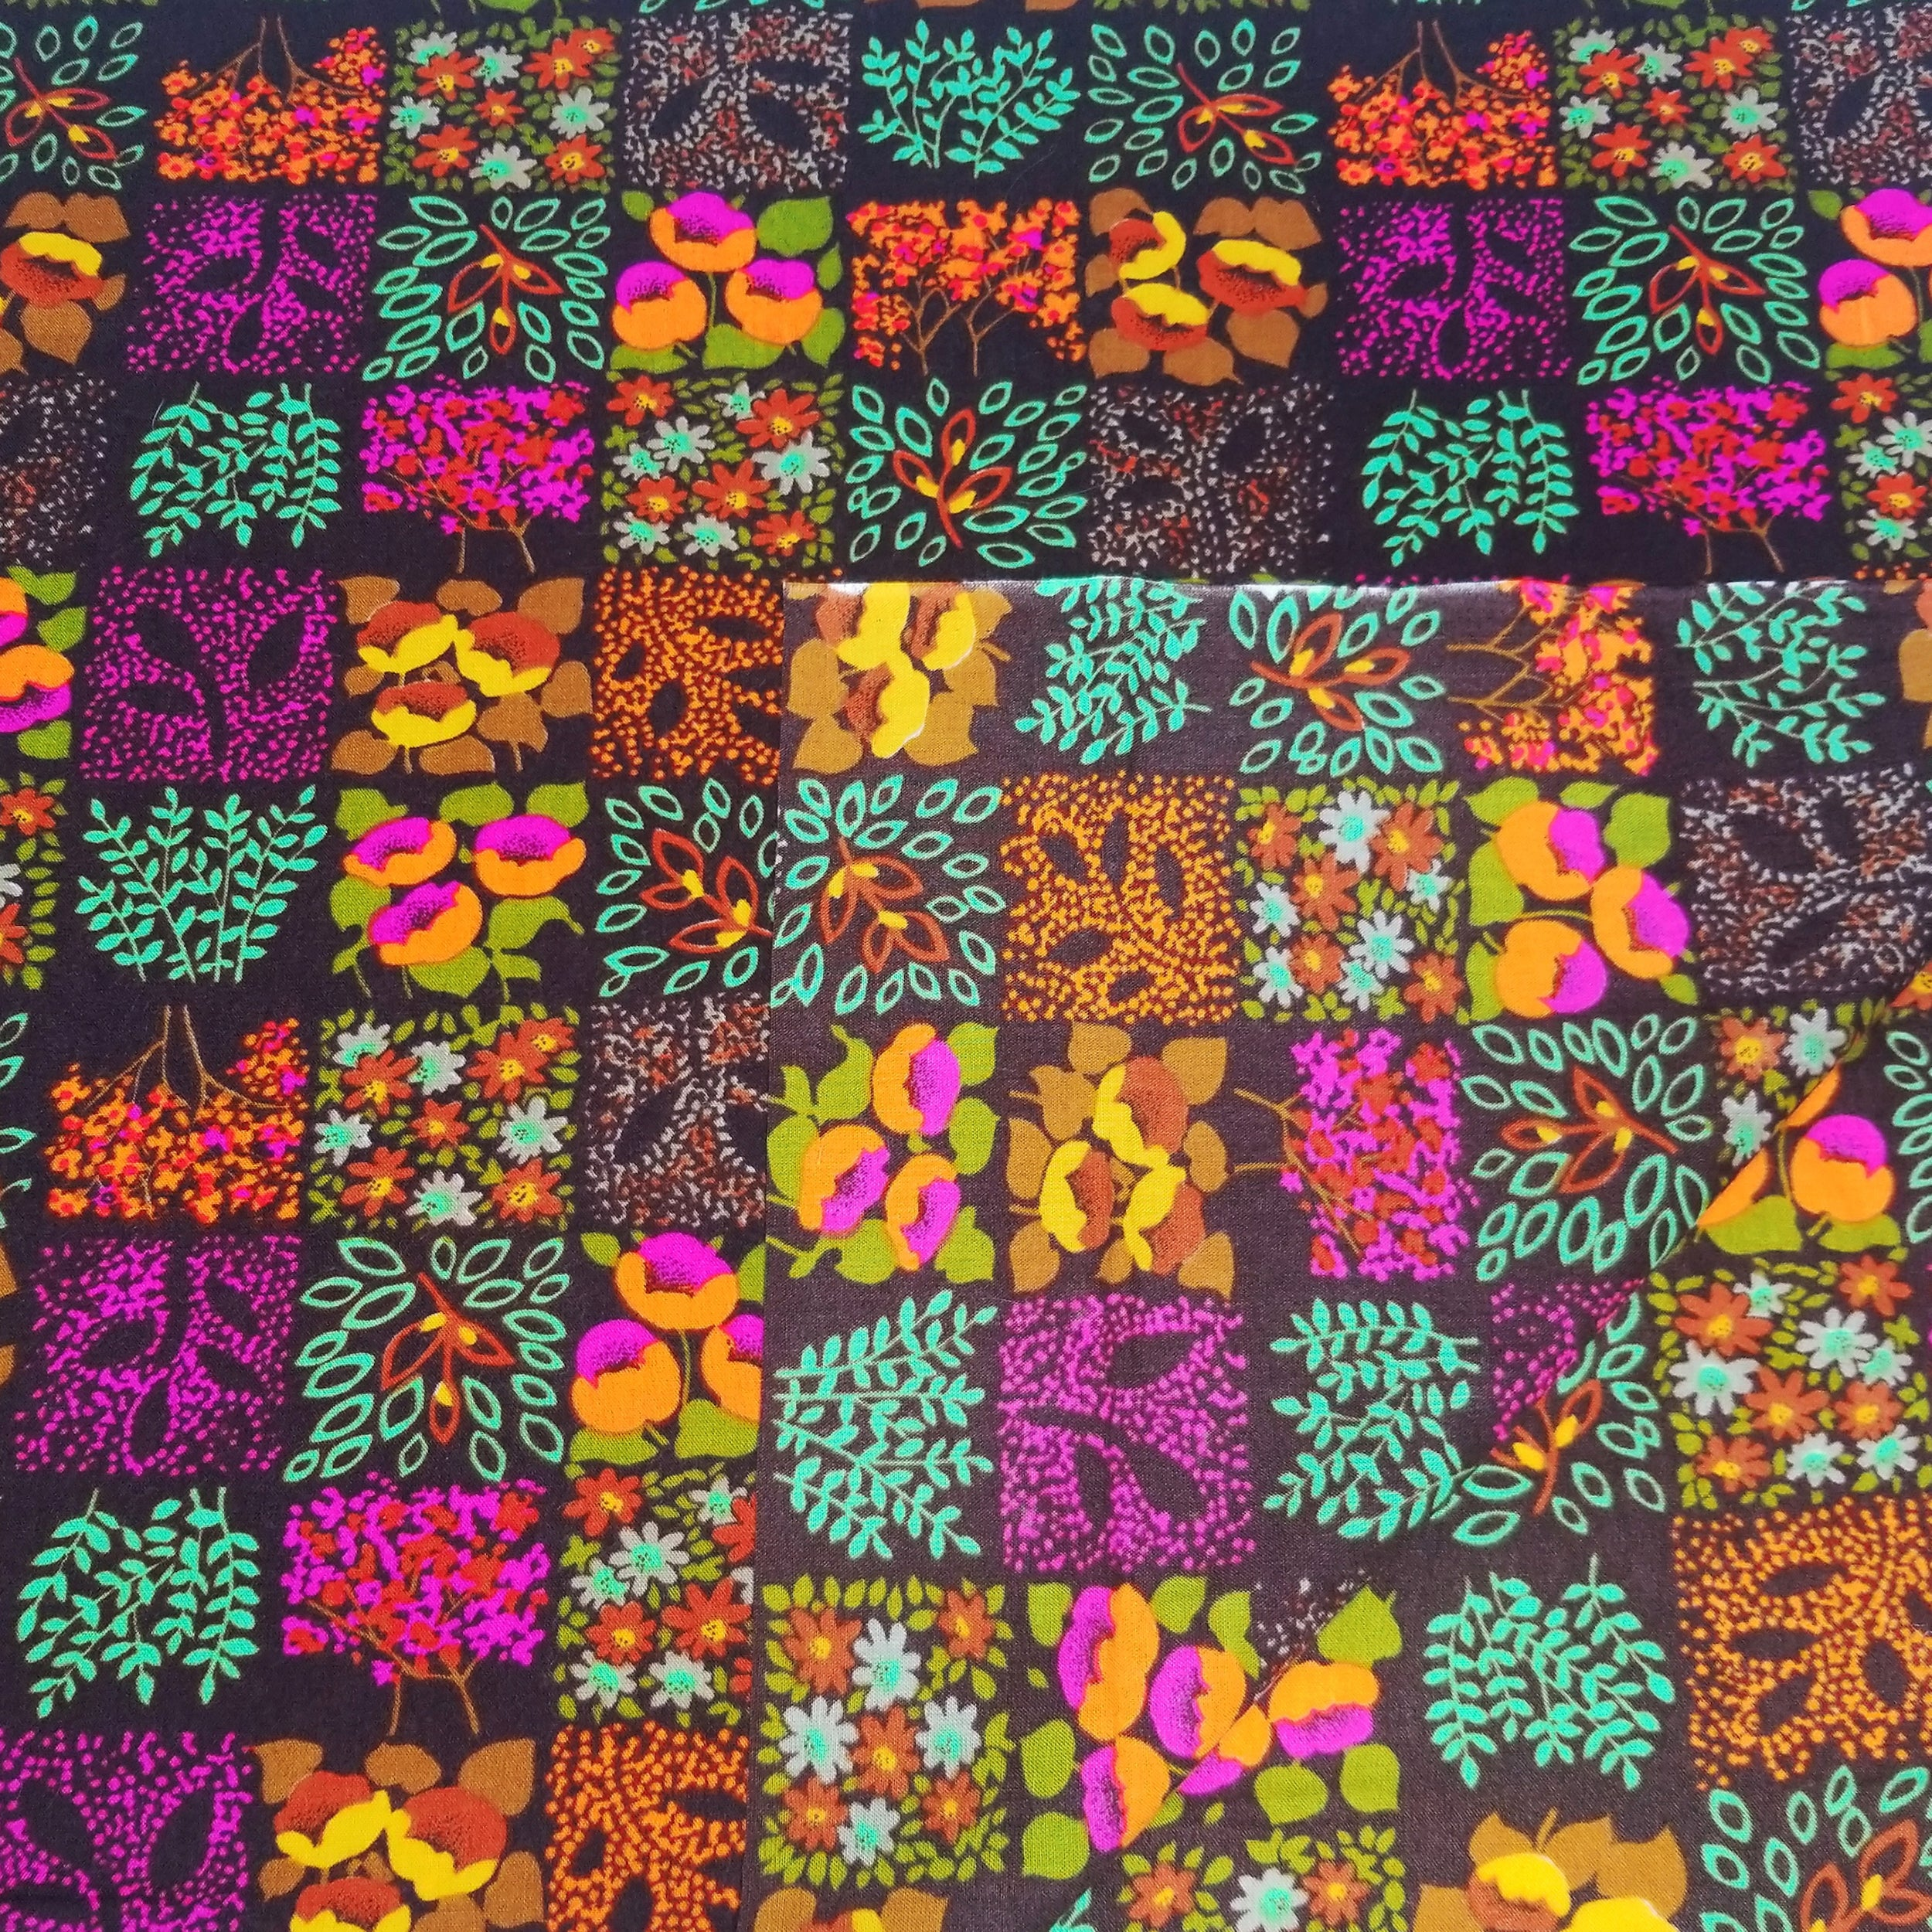 VINTAGE FABRIC BABY BOLT HALF-YARD -  SEVENTIES' HAWAIIAN FLORAL PRINT IN BRIGHTS & BROWN